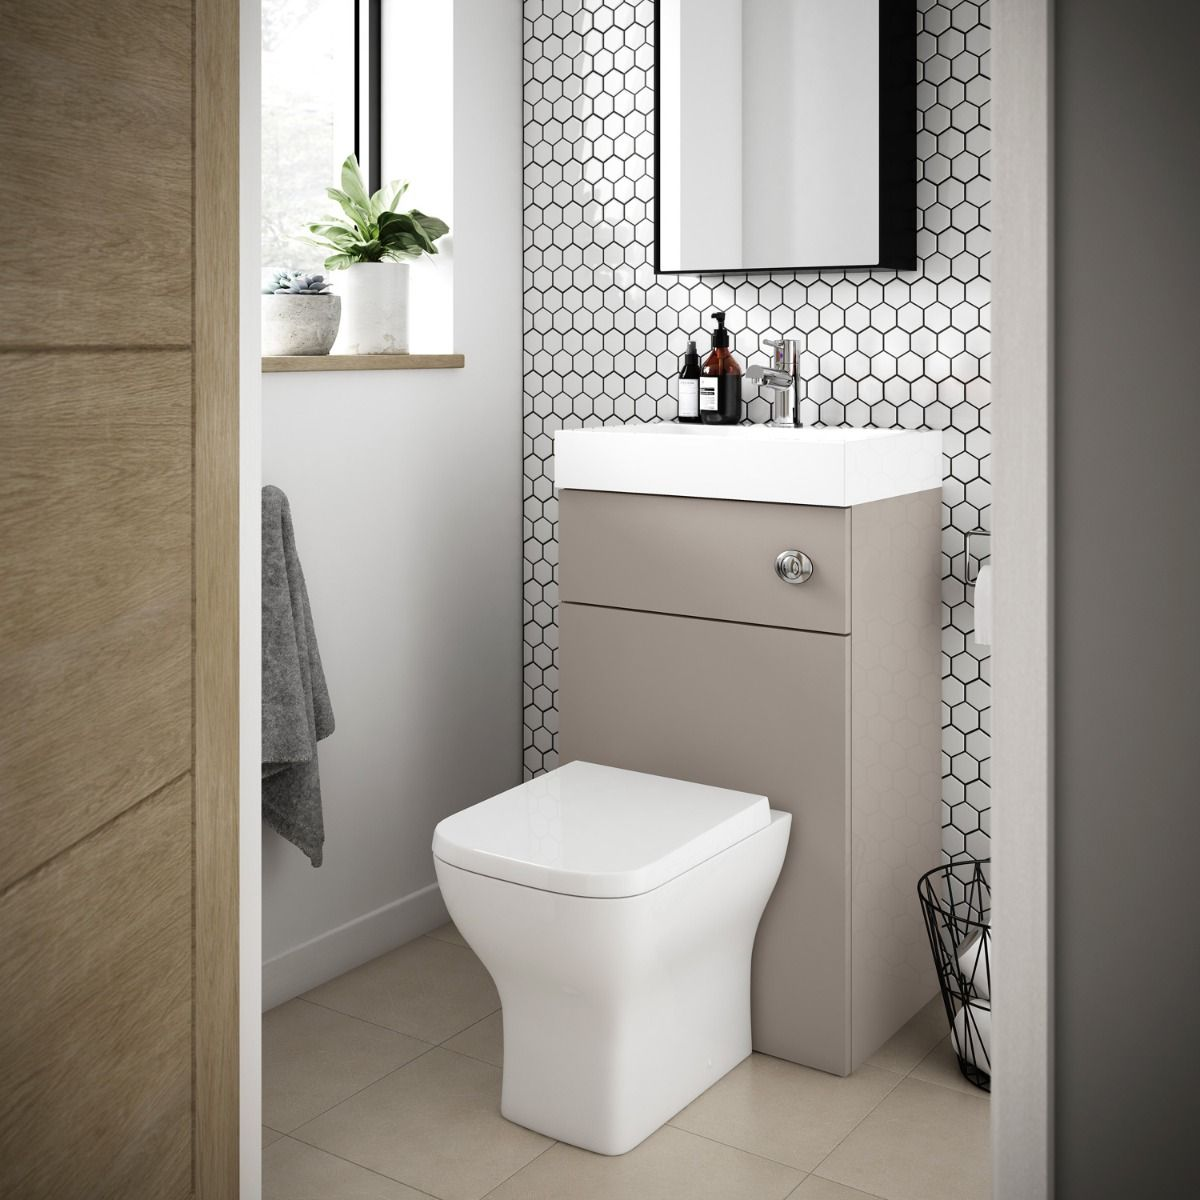 Toilet with integrated basin installed in a small room